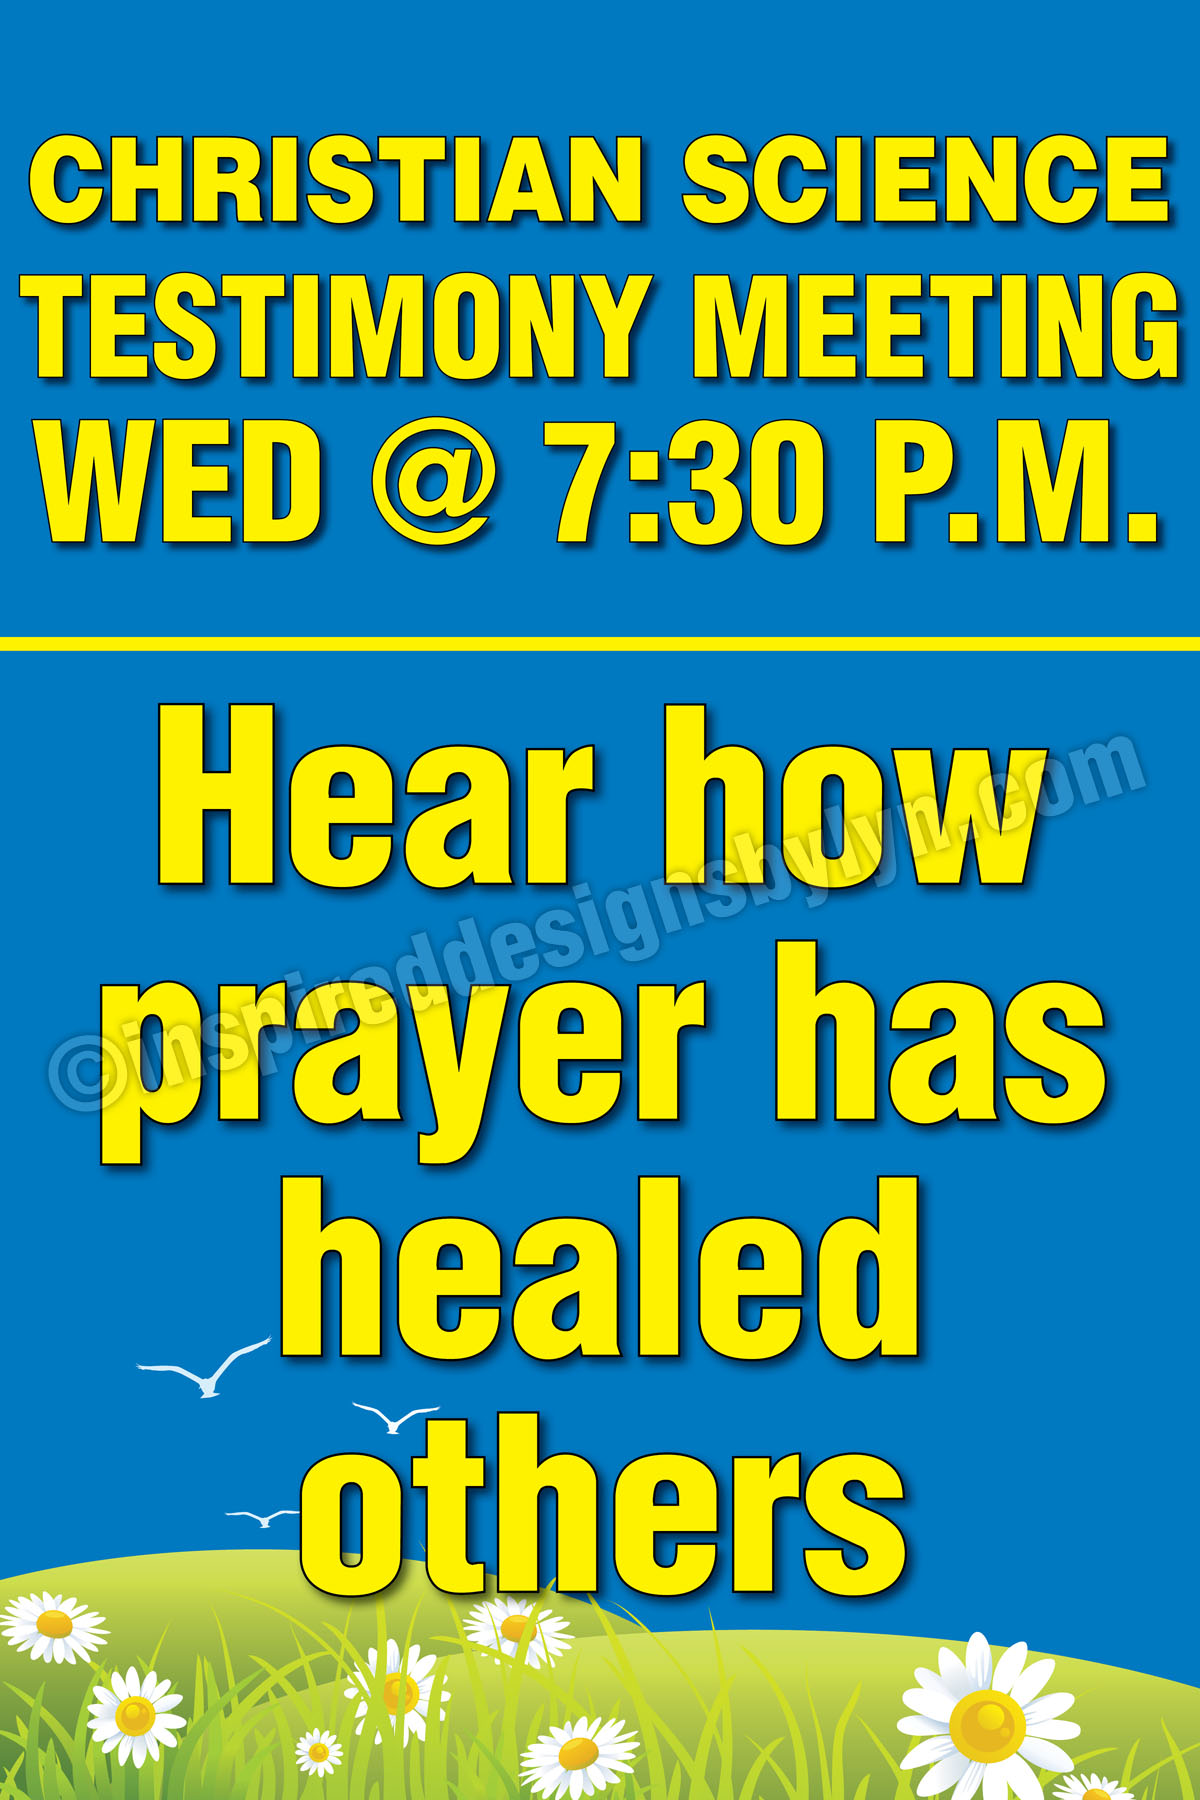 Hear how prayer has healed others (W1)